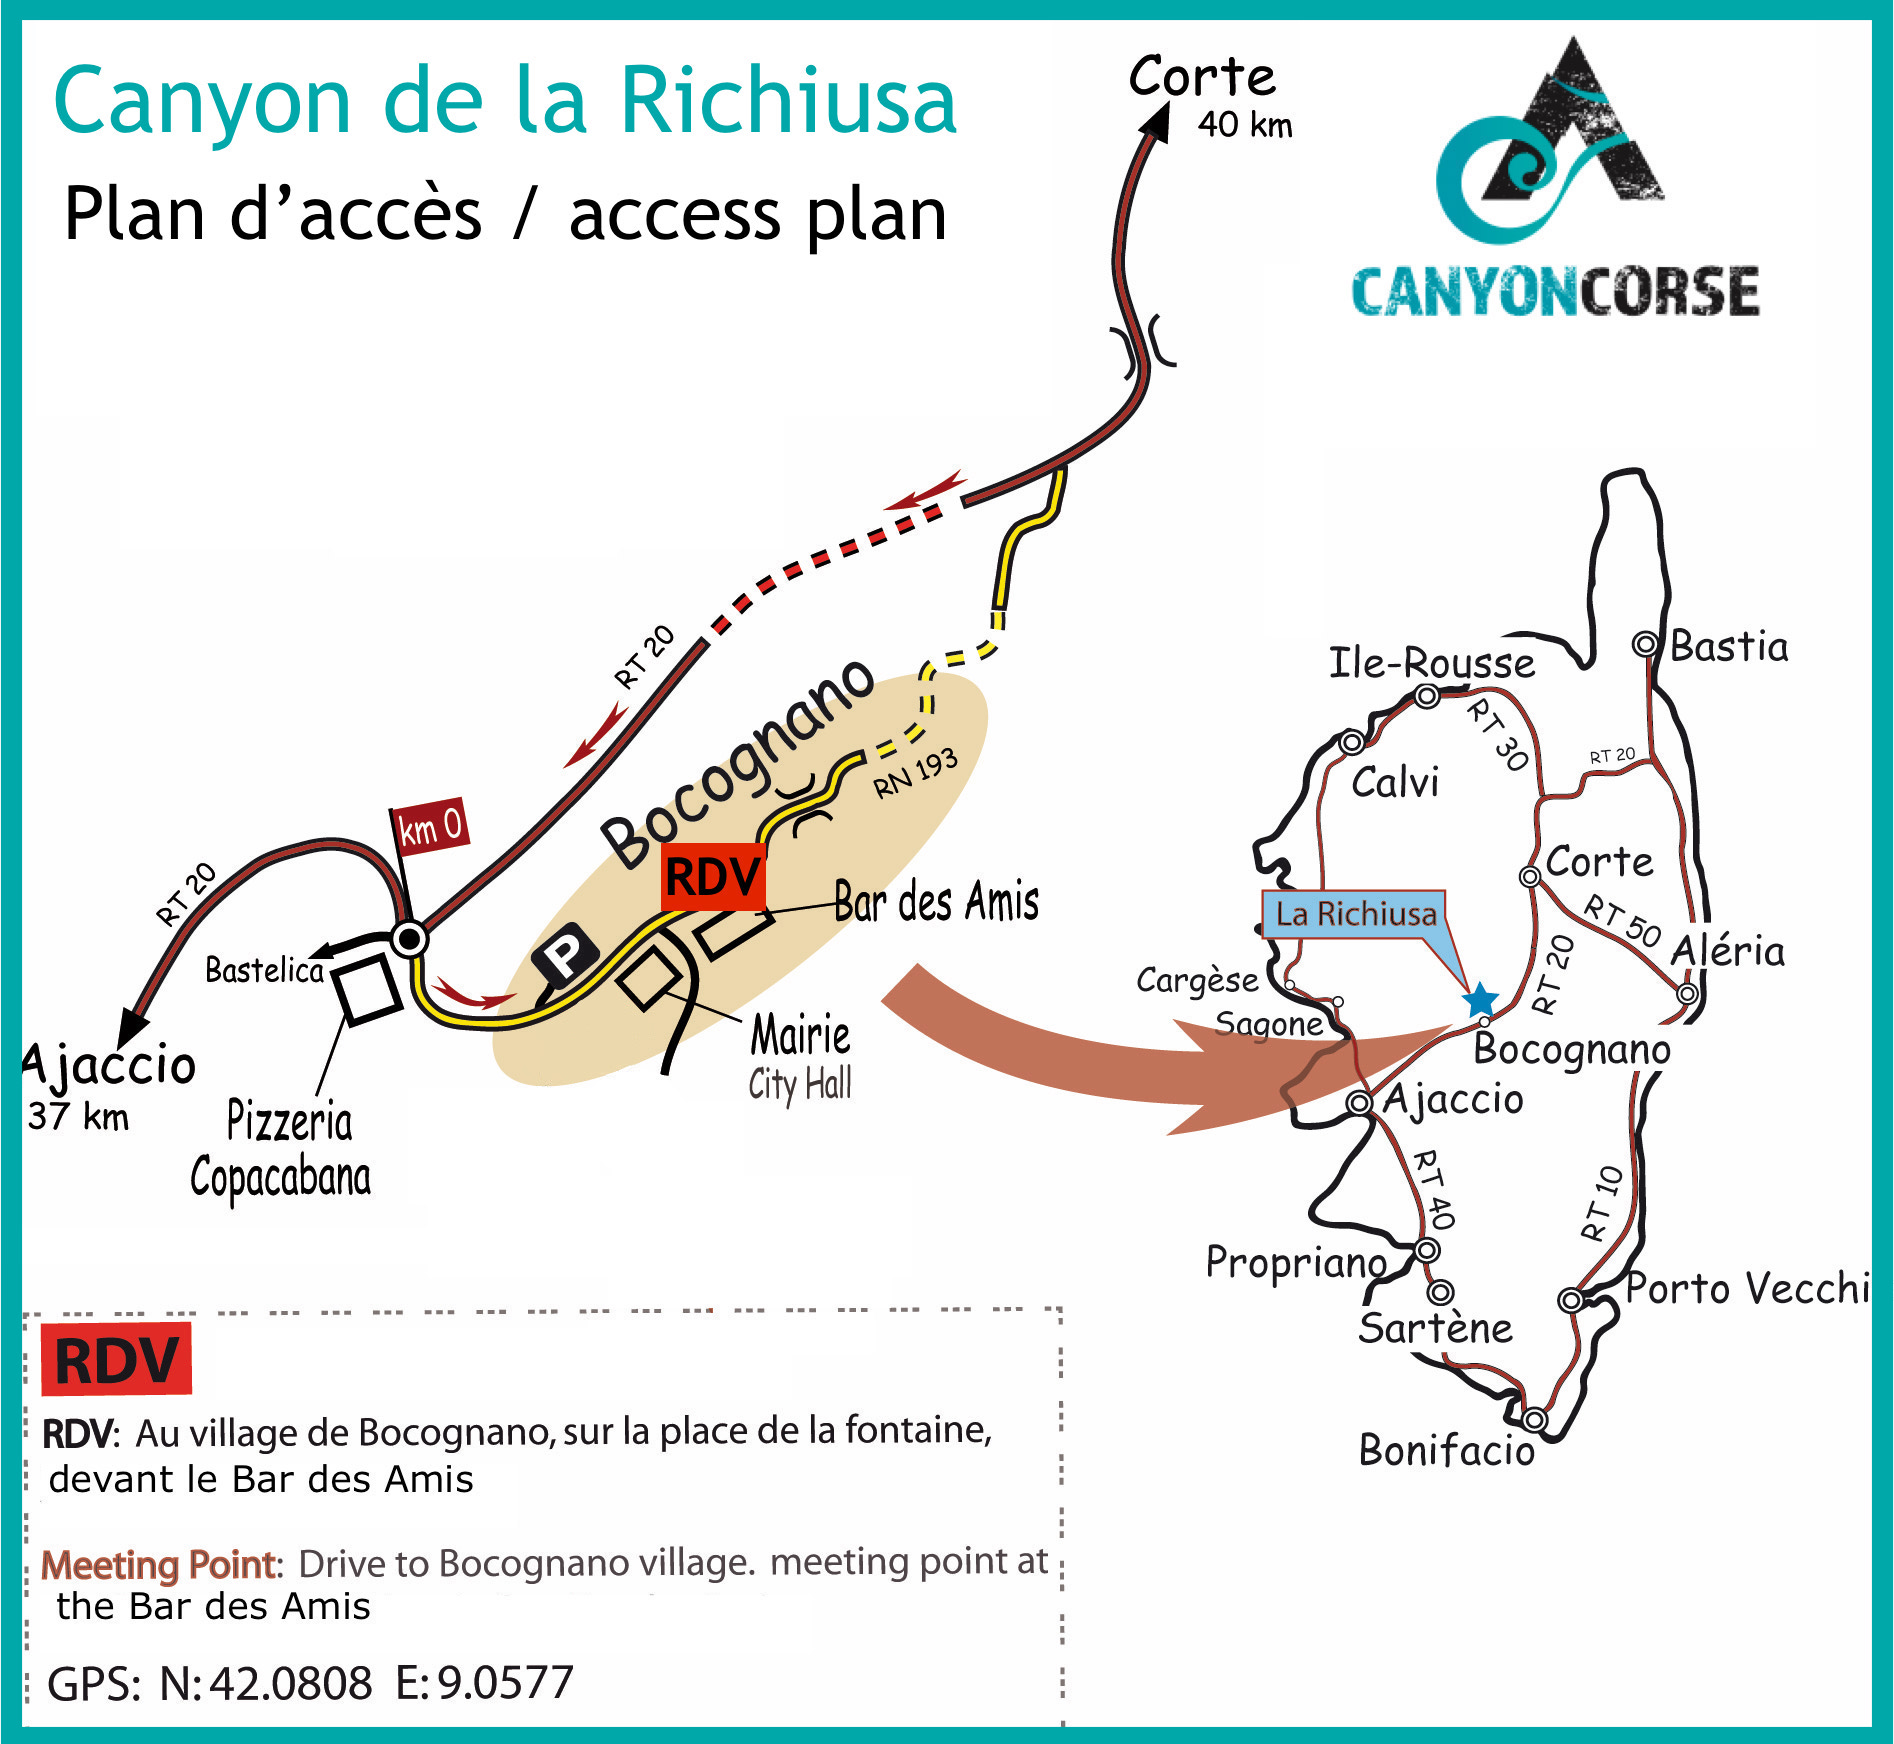 Le Canyon de la Richiusa